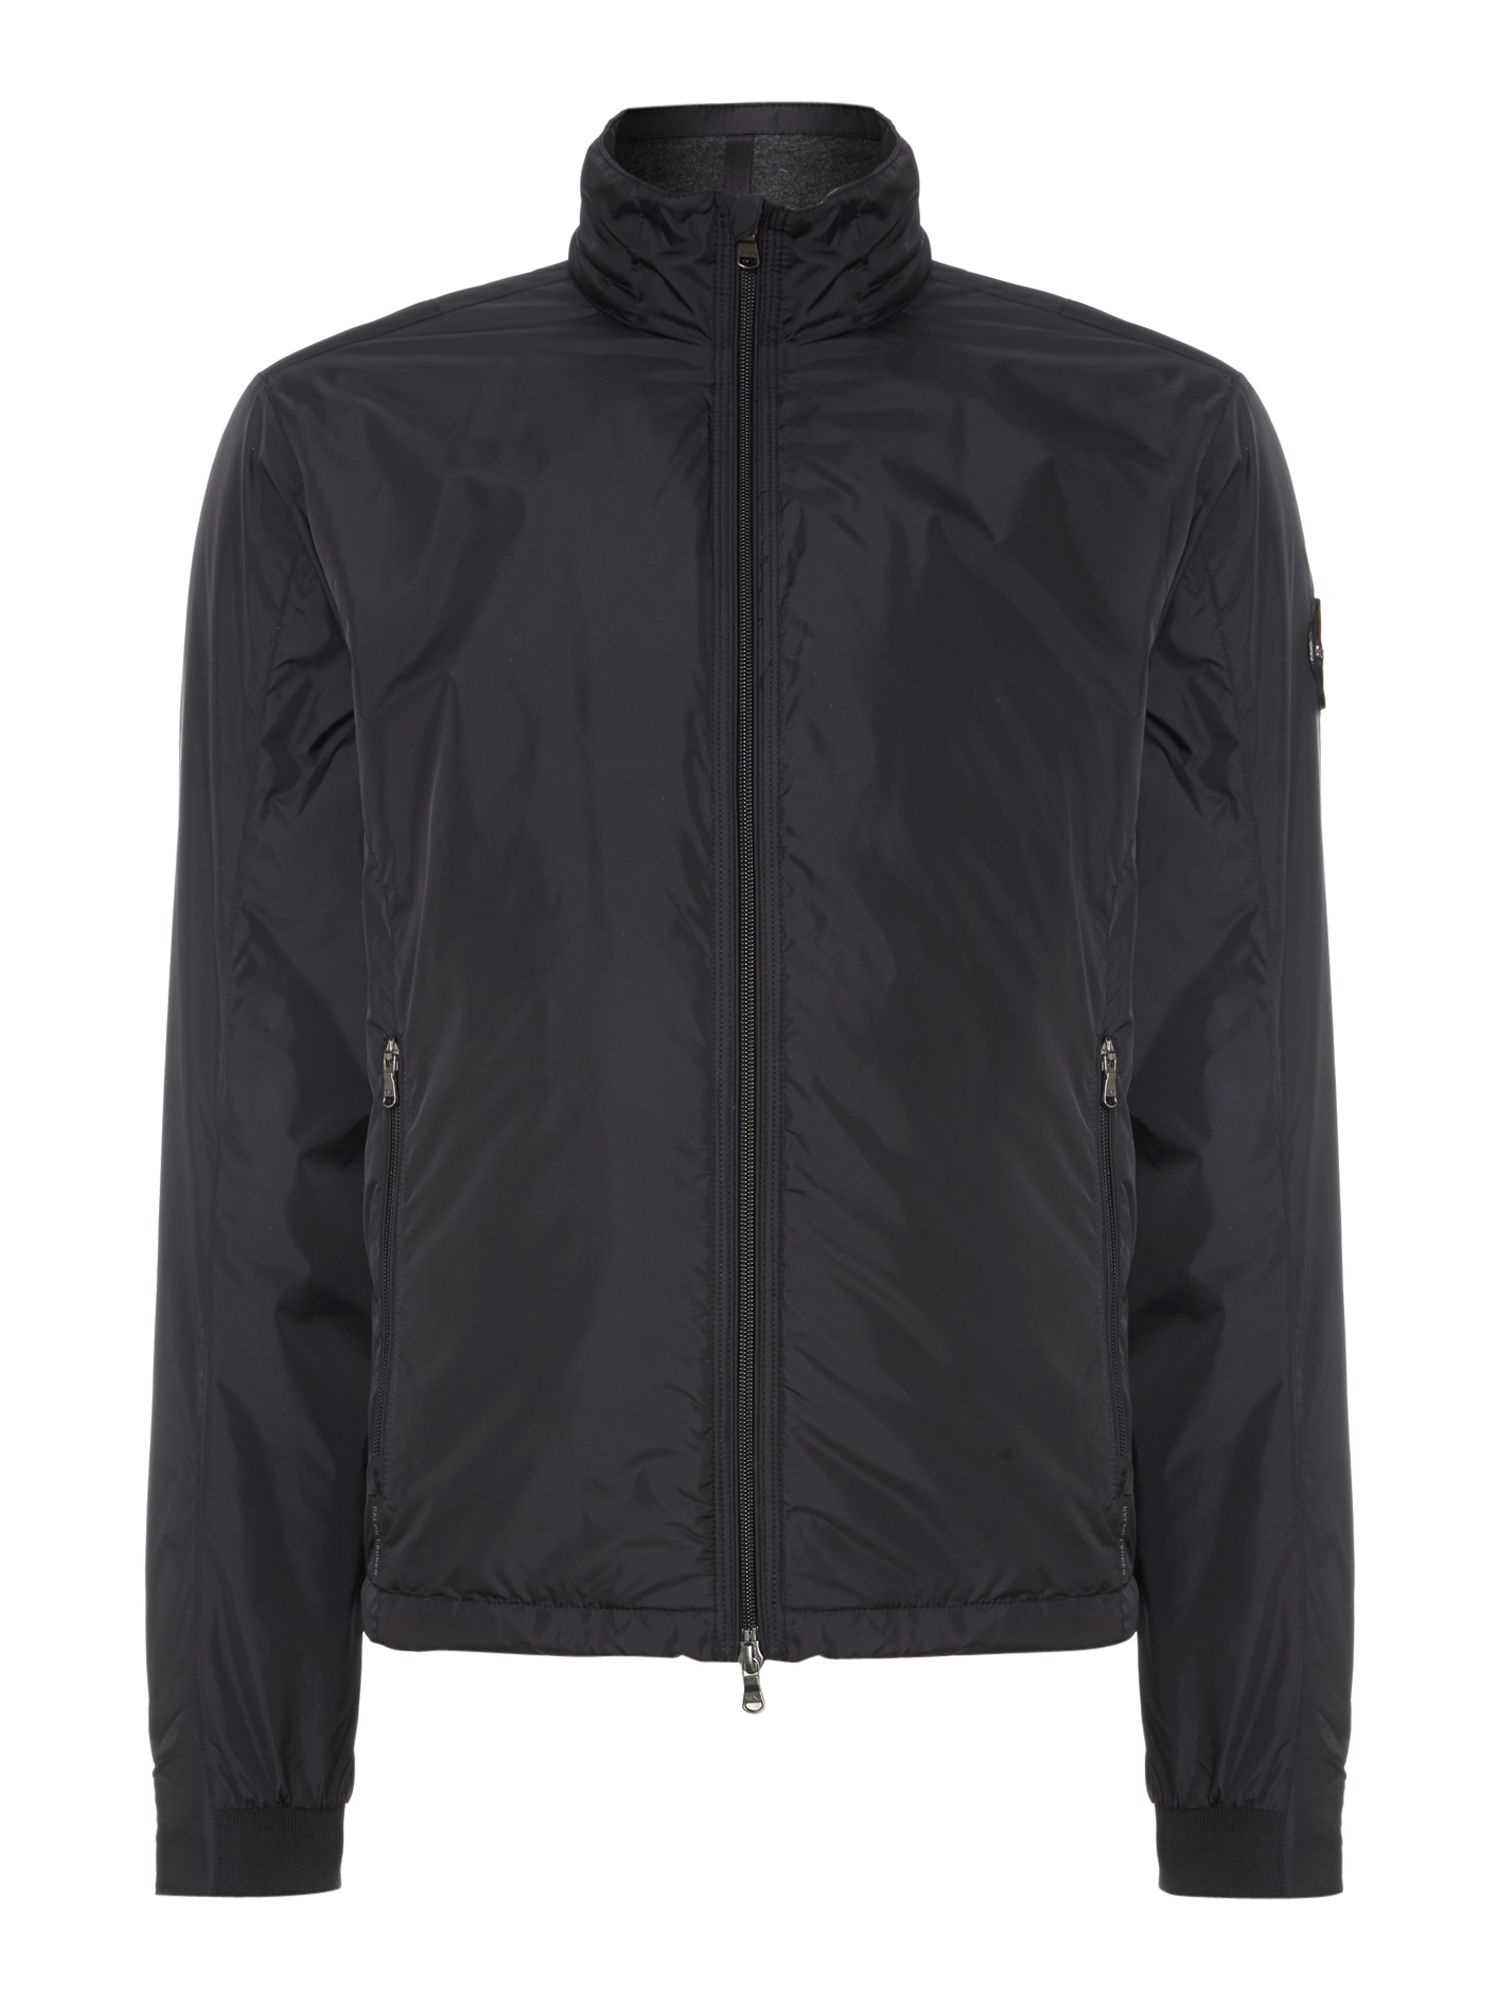 Simplux padded performance hooded jacket